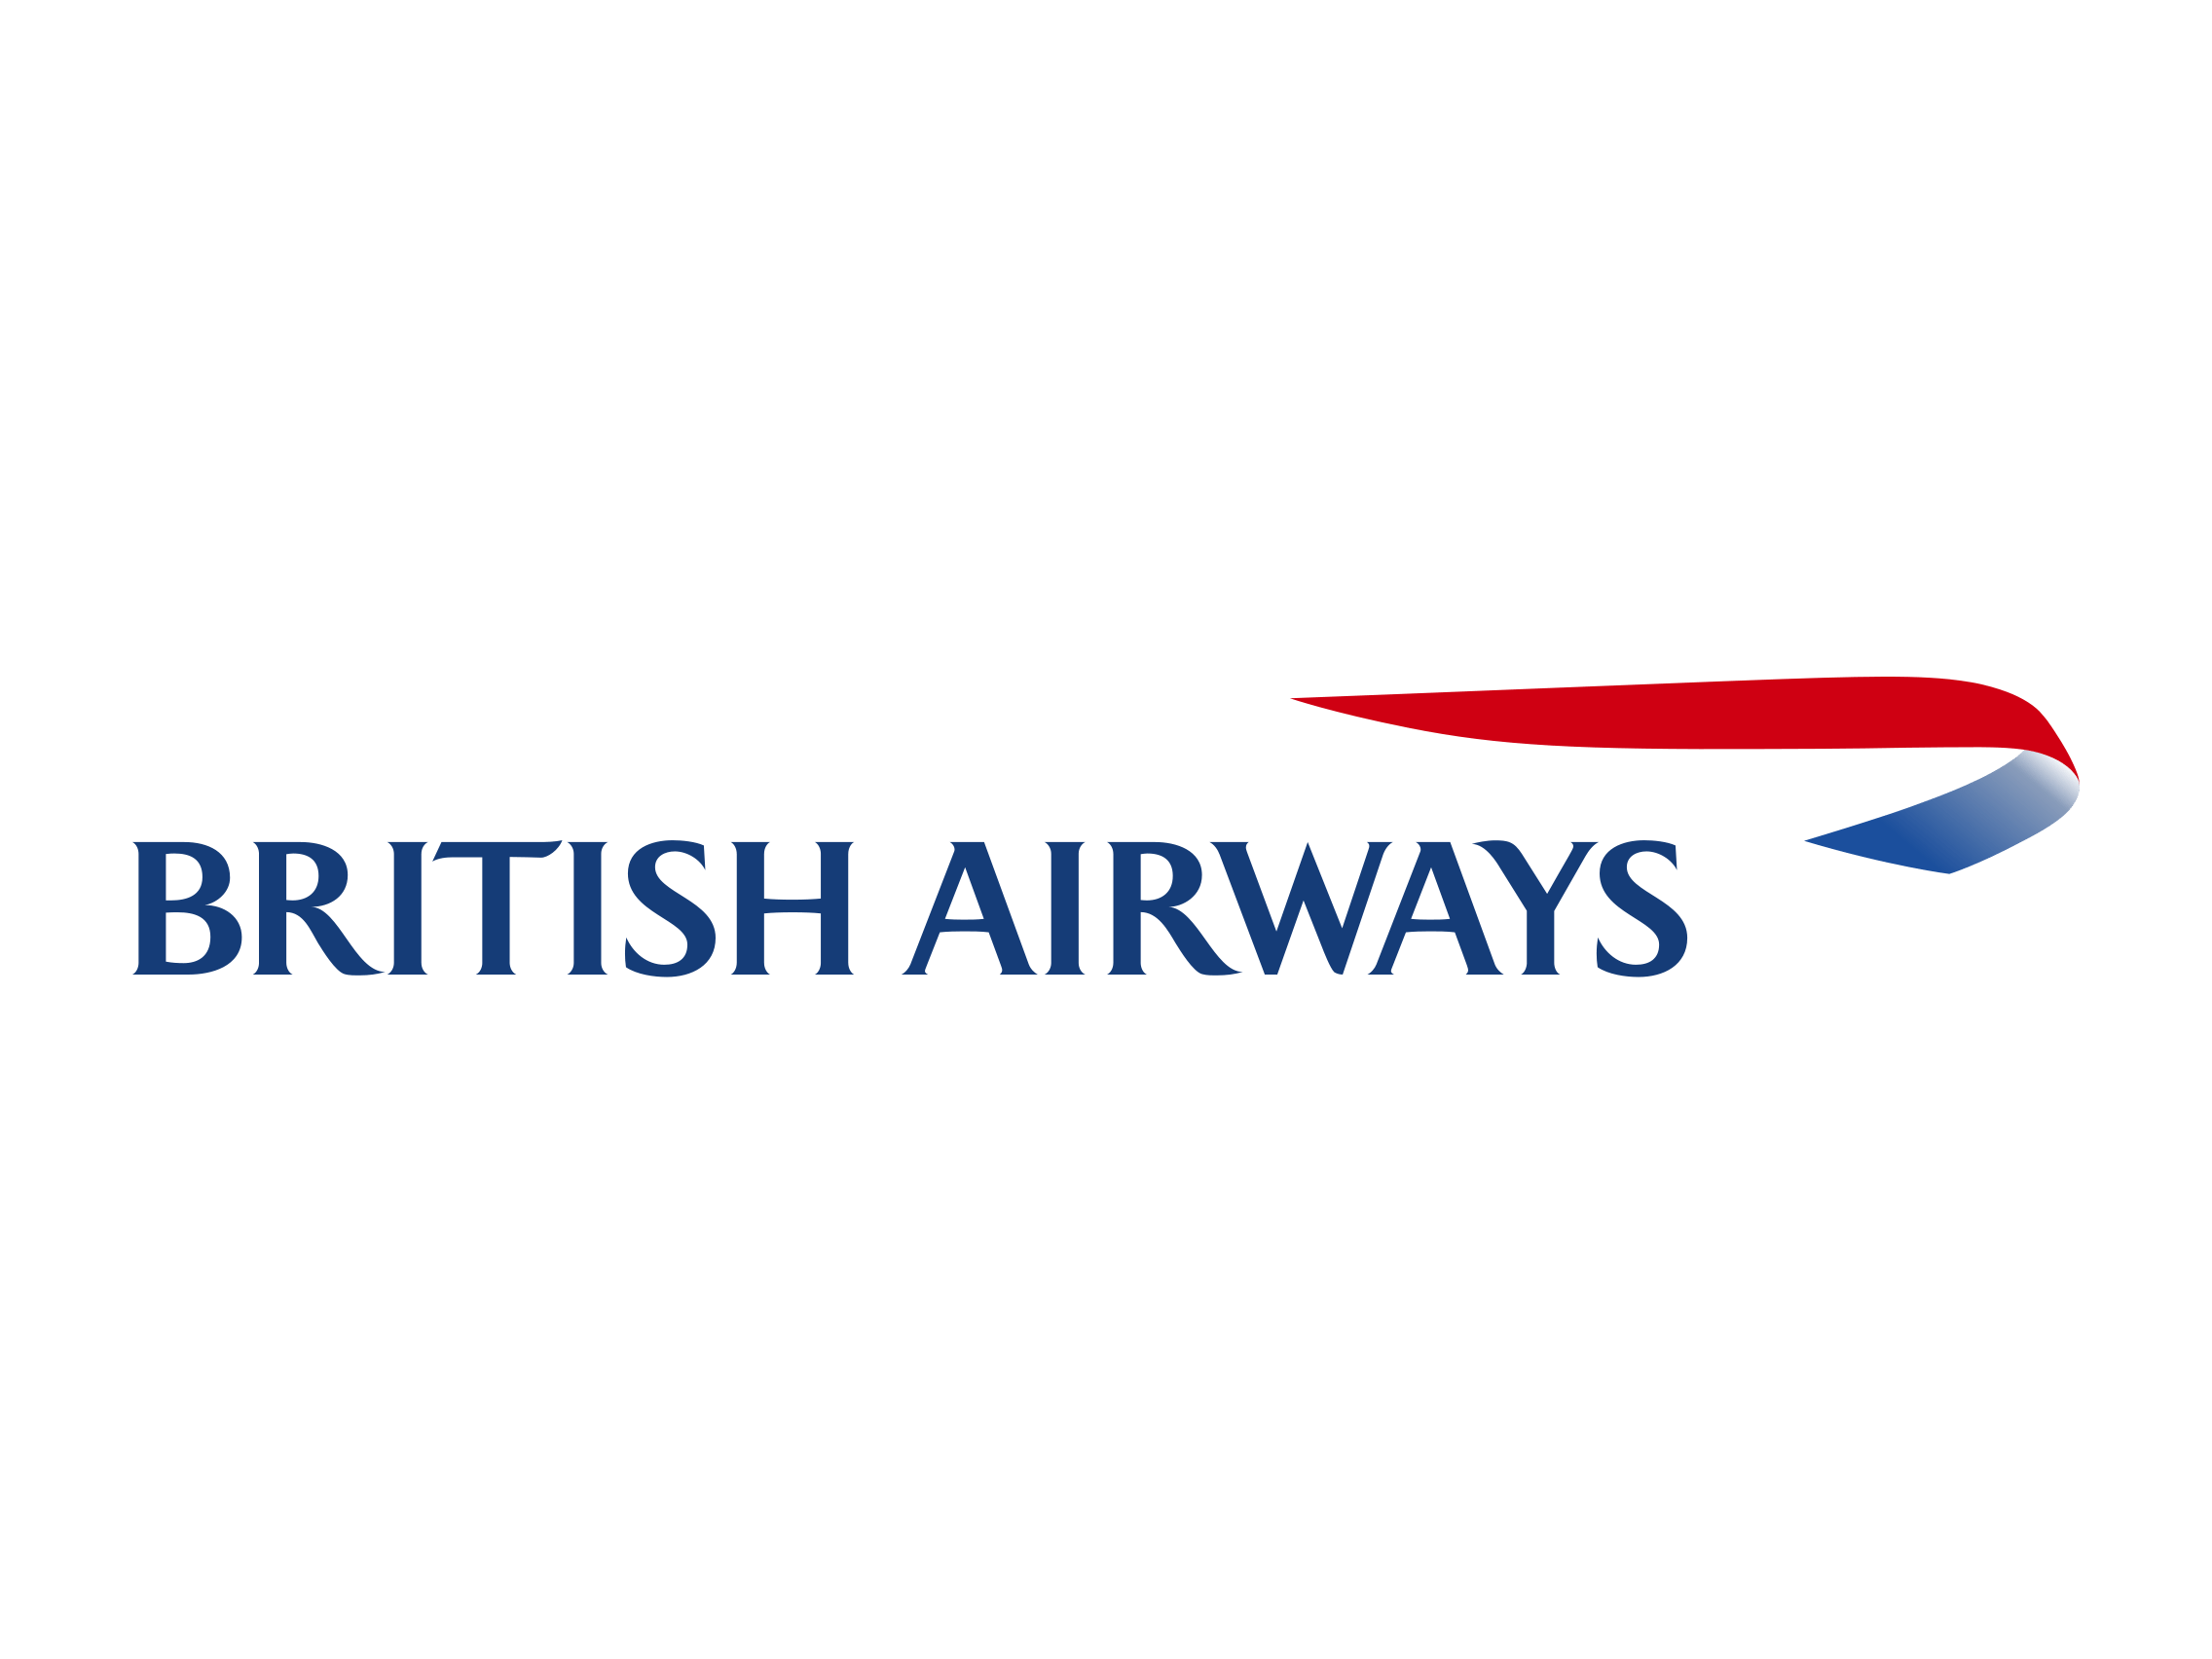 British Airways Contact Number